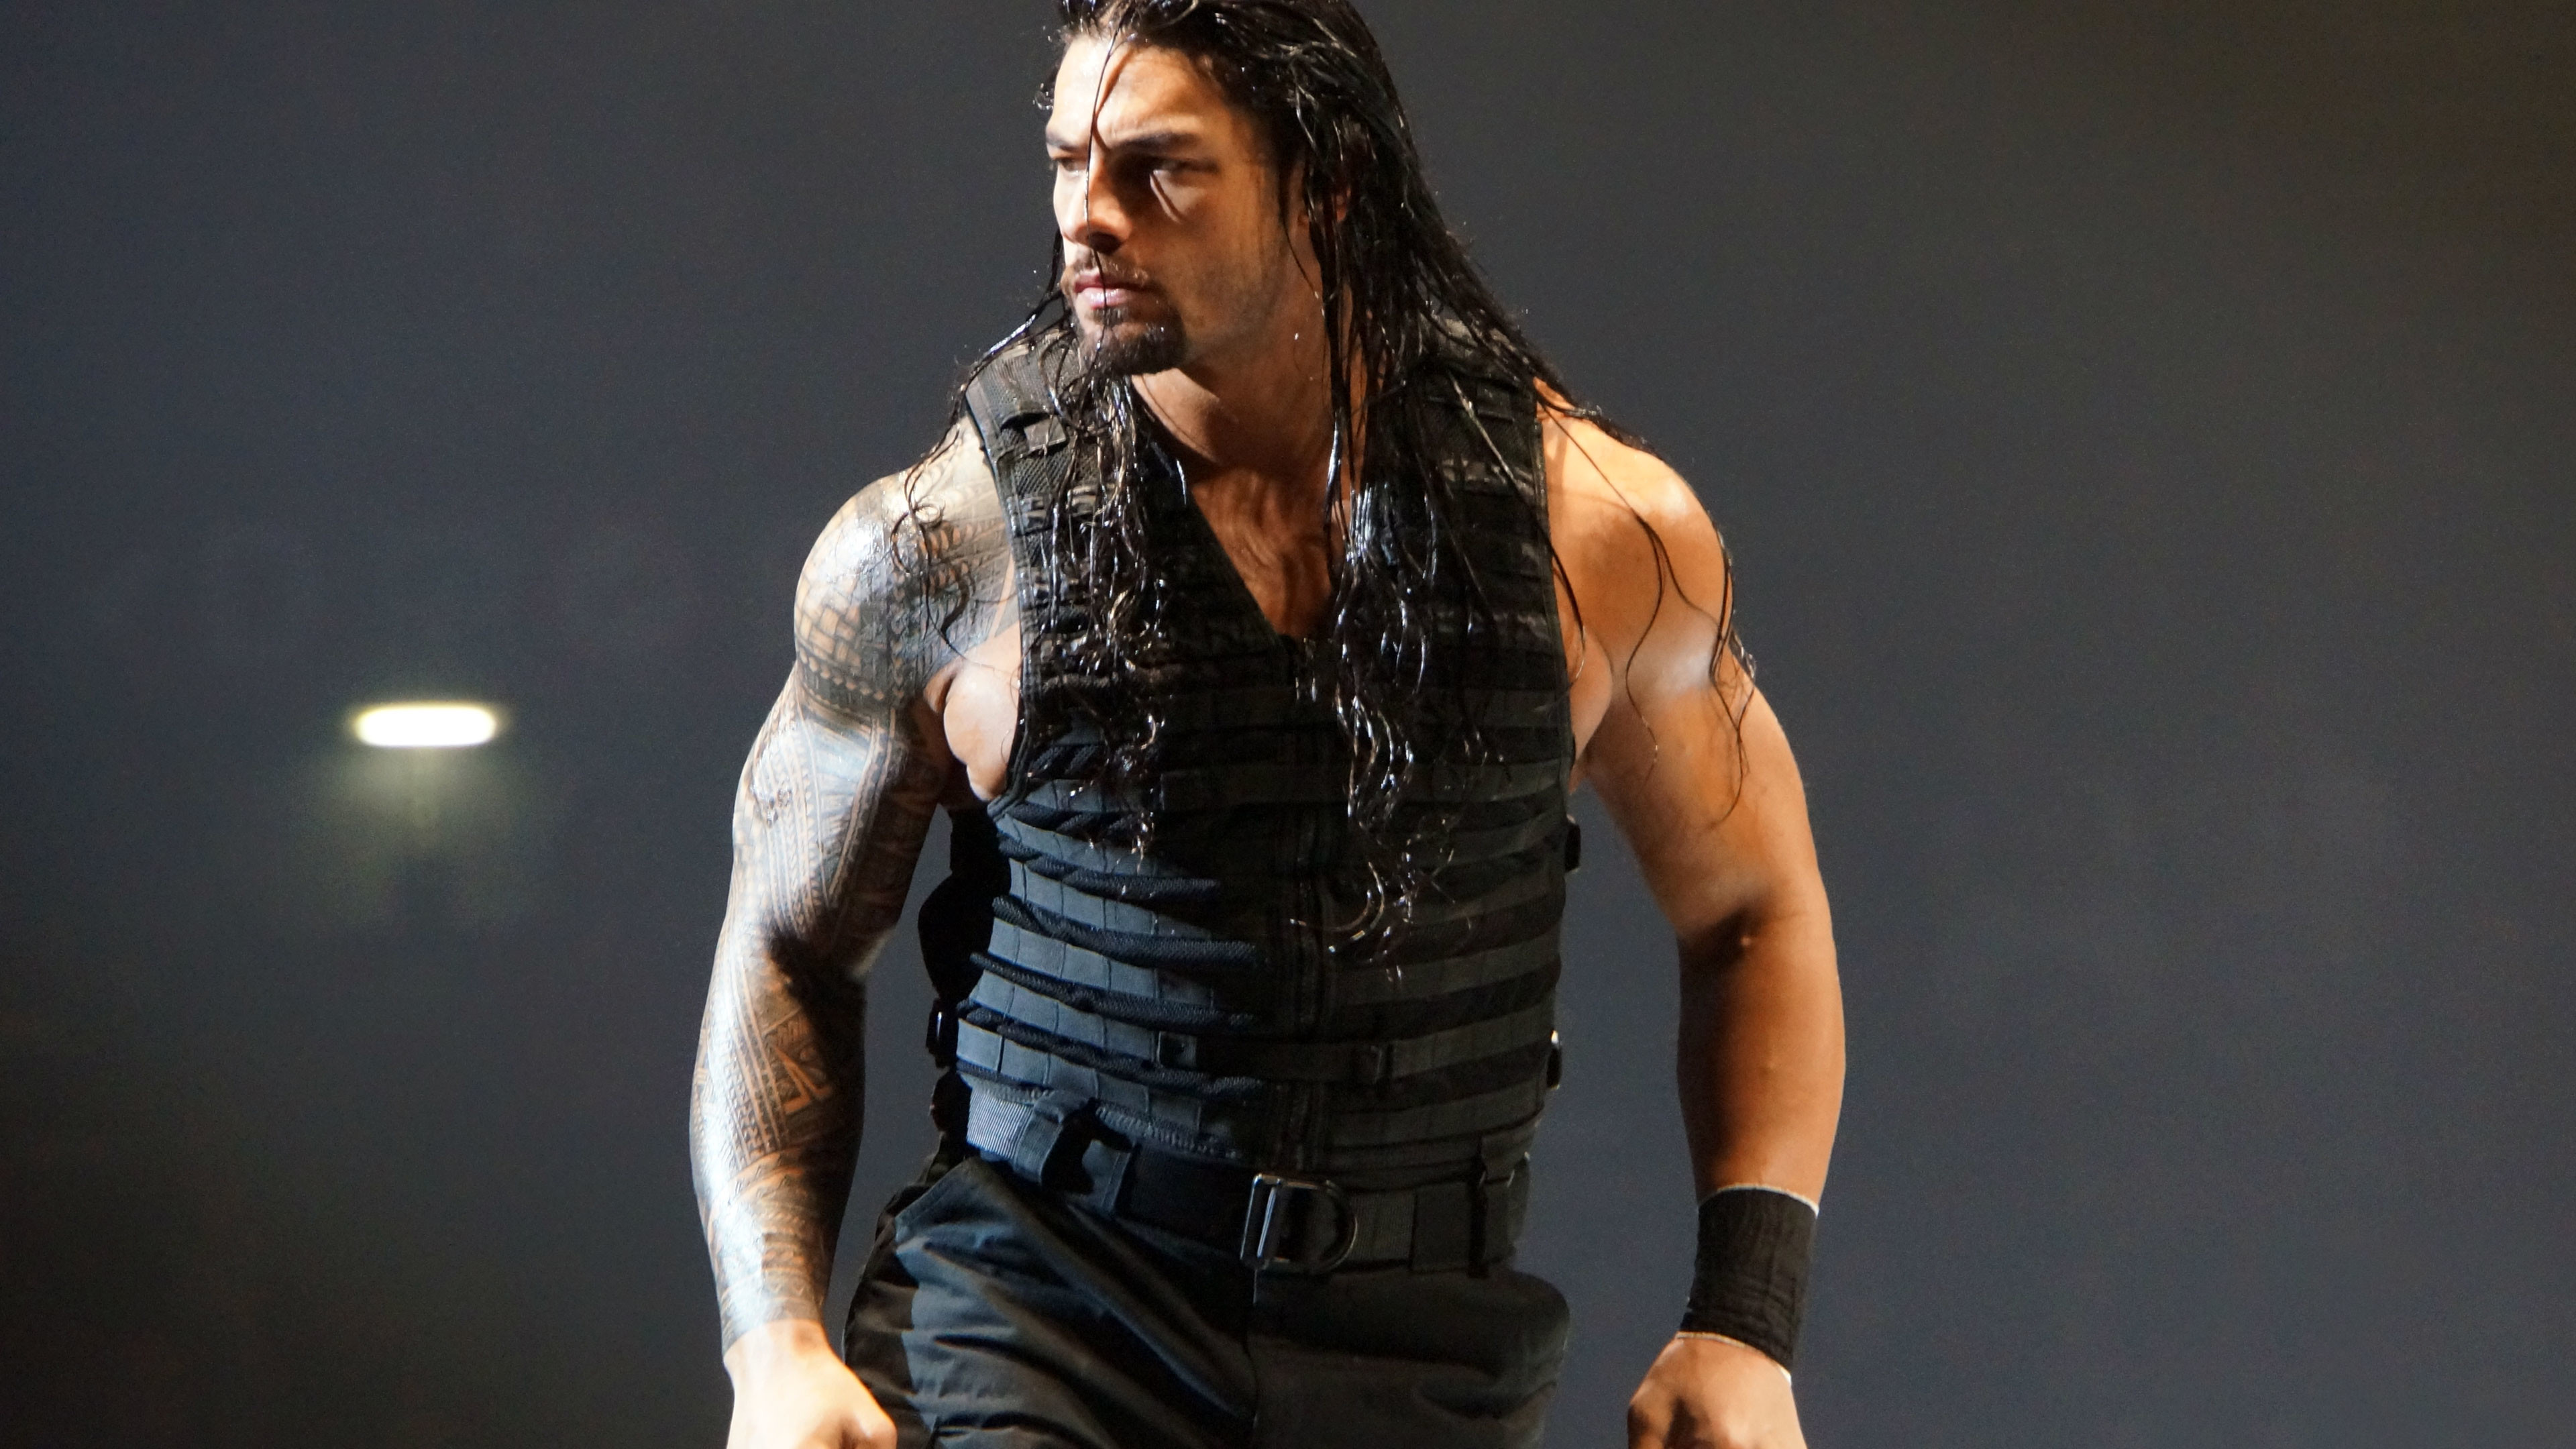 Roman reigns wallpapers free download wwe wallpapers wwe images wwe wallpapers free download wwe sup